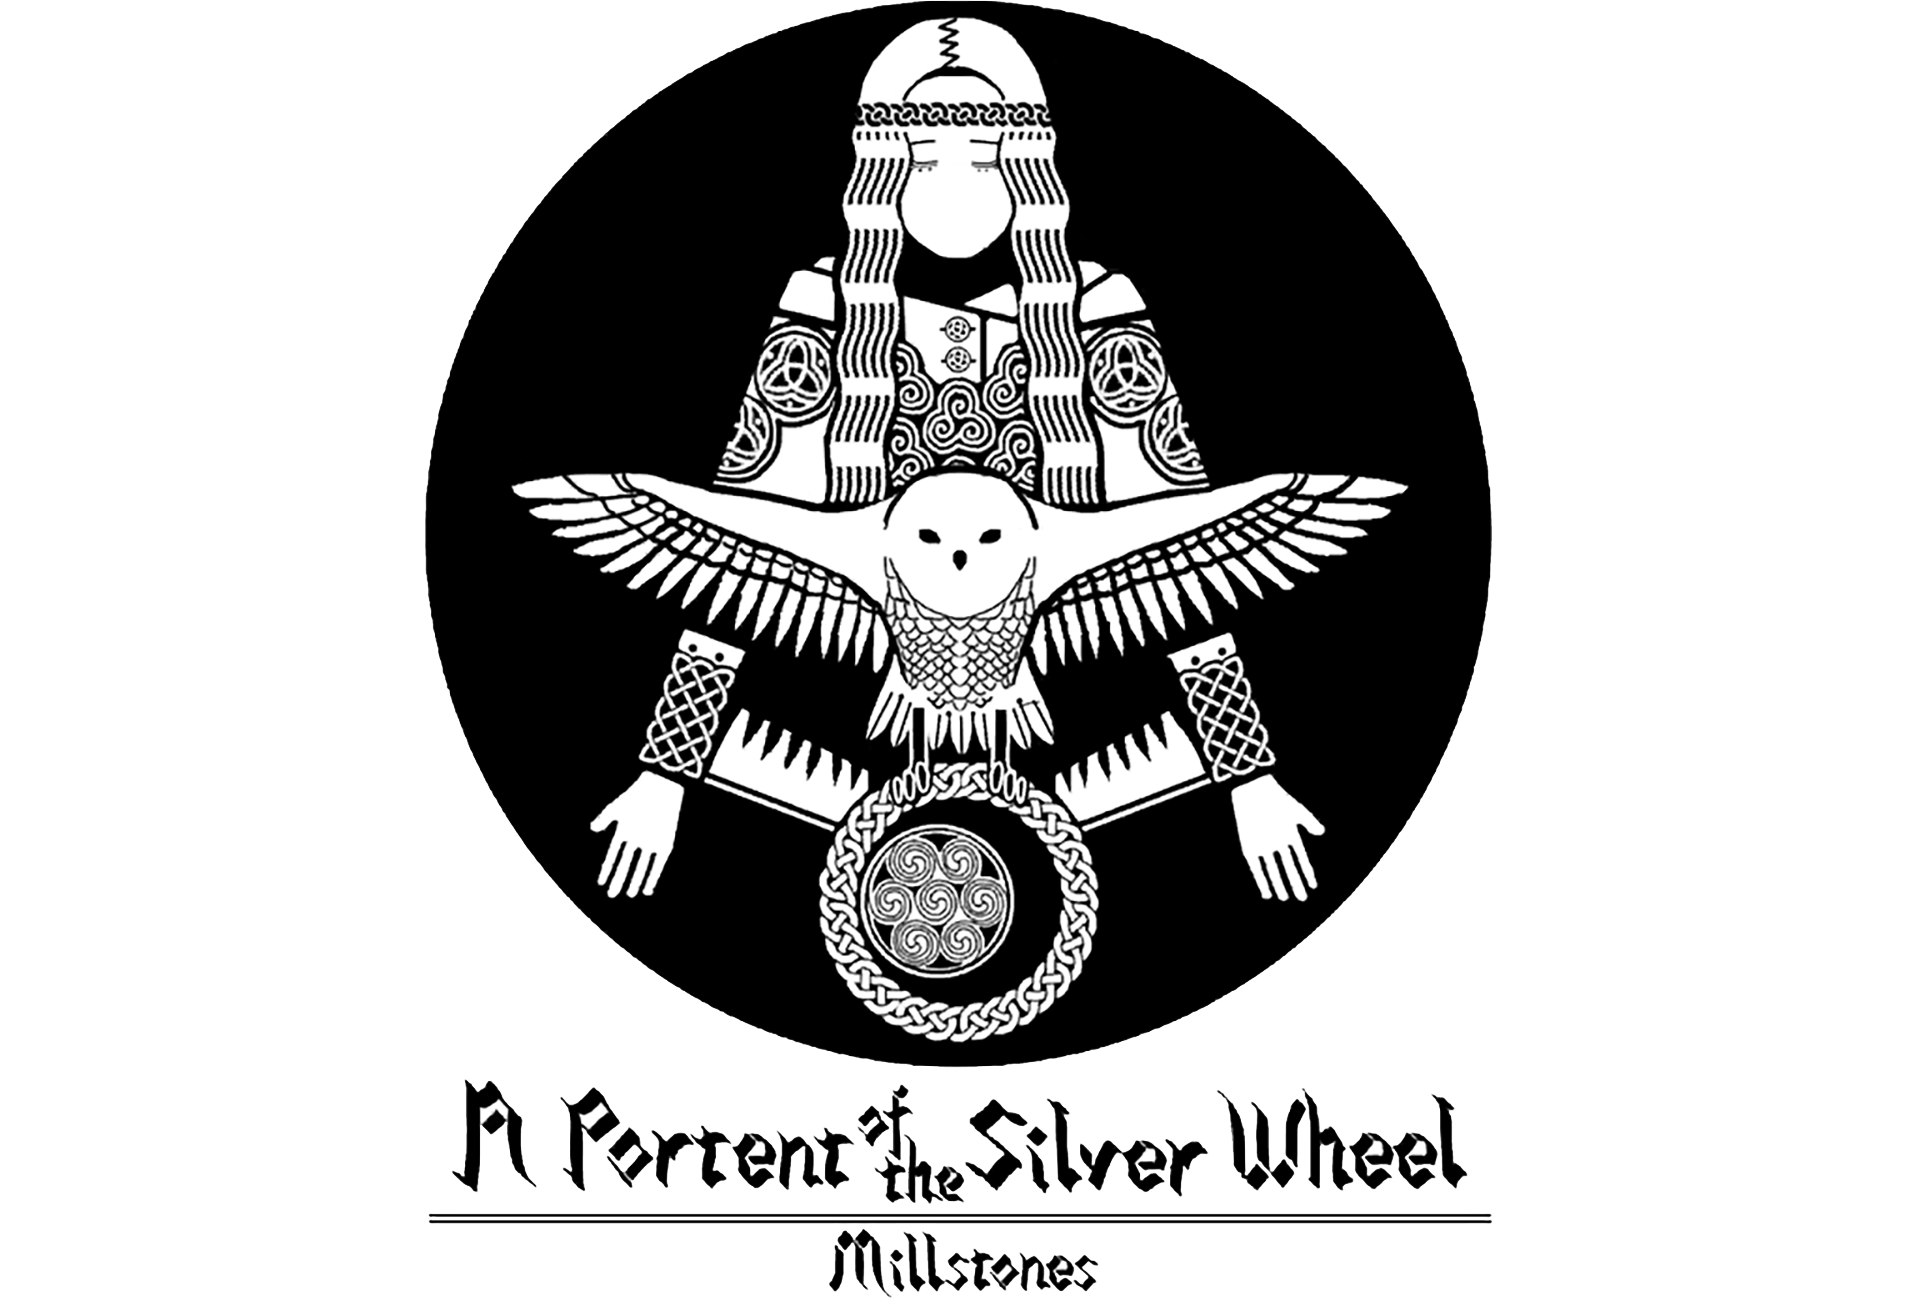 A Portent of the Silver Wheel.png